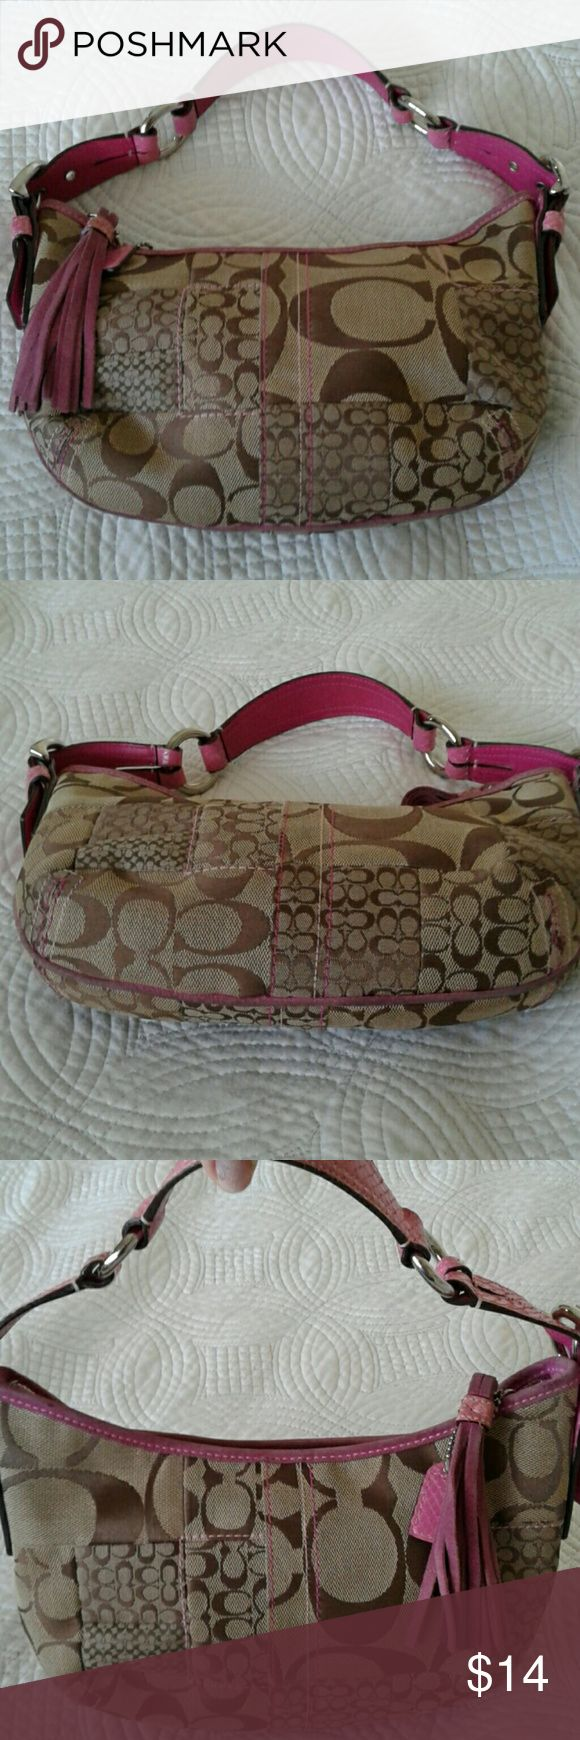 Coach hobo bag NC05Q 3680 Coach hobo bag condition used signs normal of wear Coach Bags Hobos